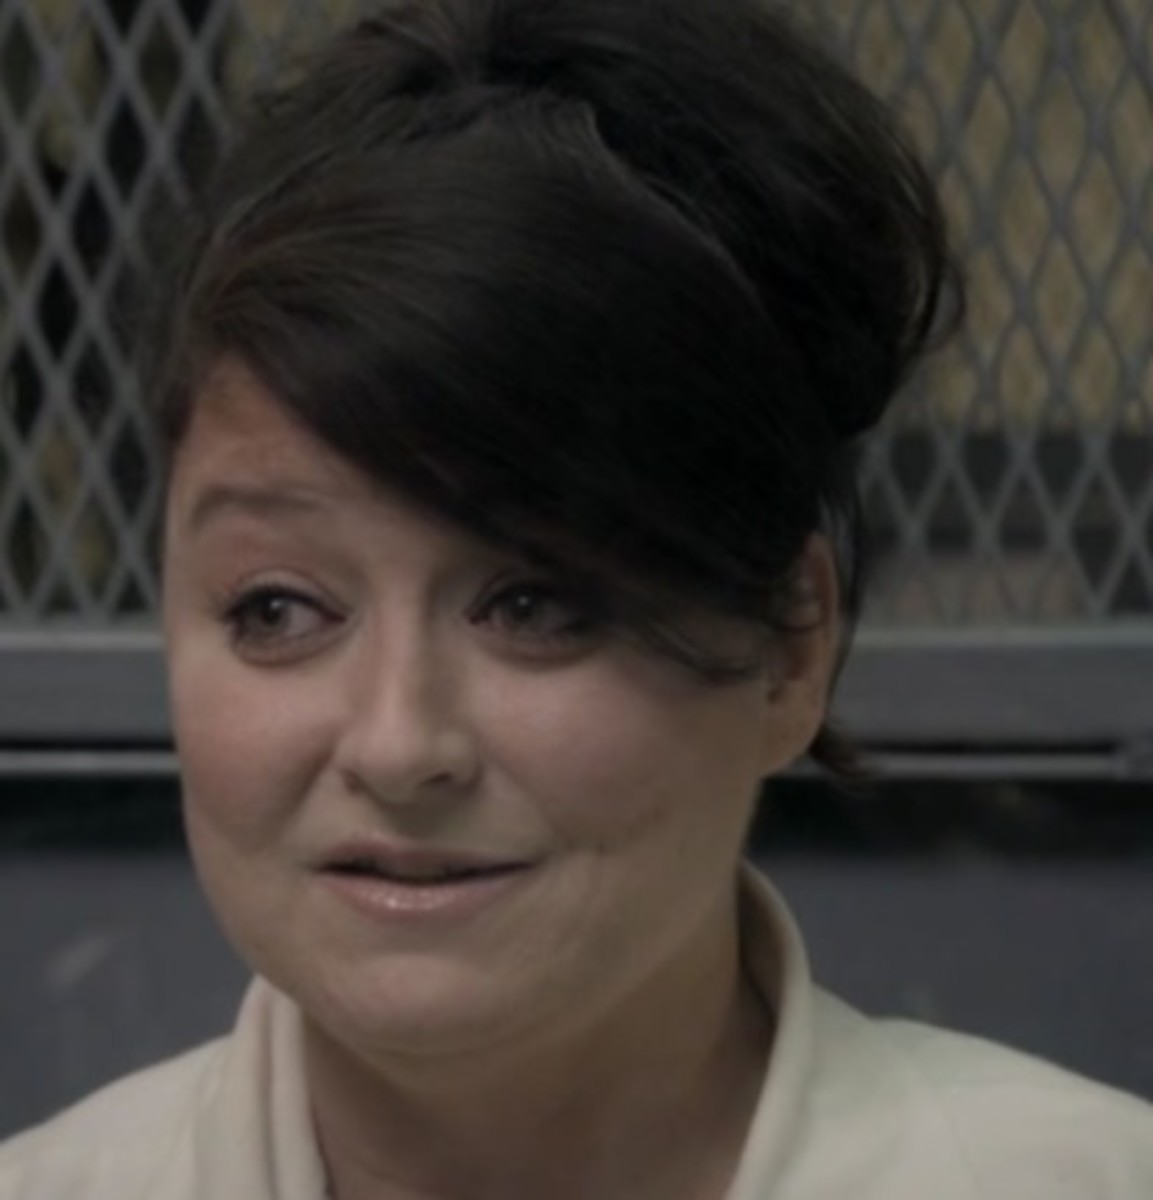 Recent photo of now 51 year old Darlie Routier on death row.